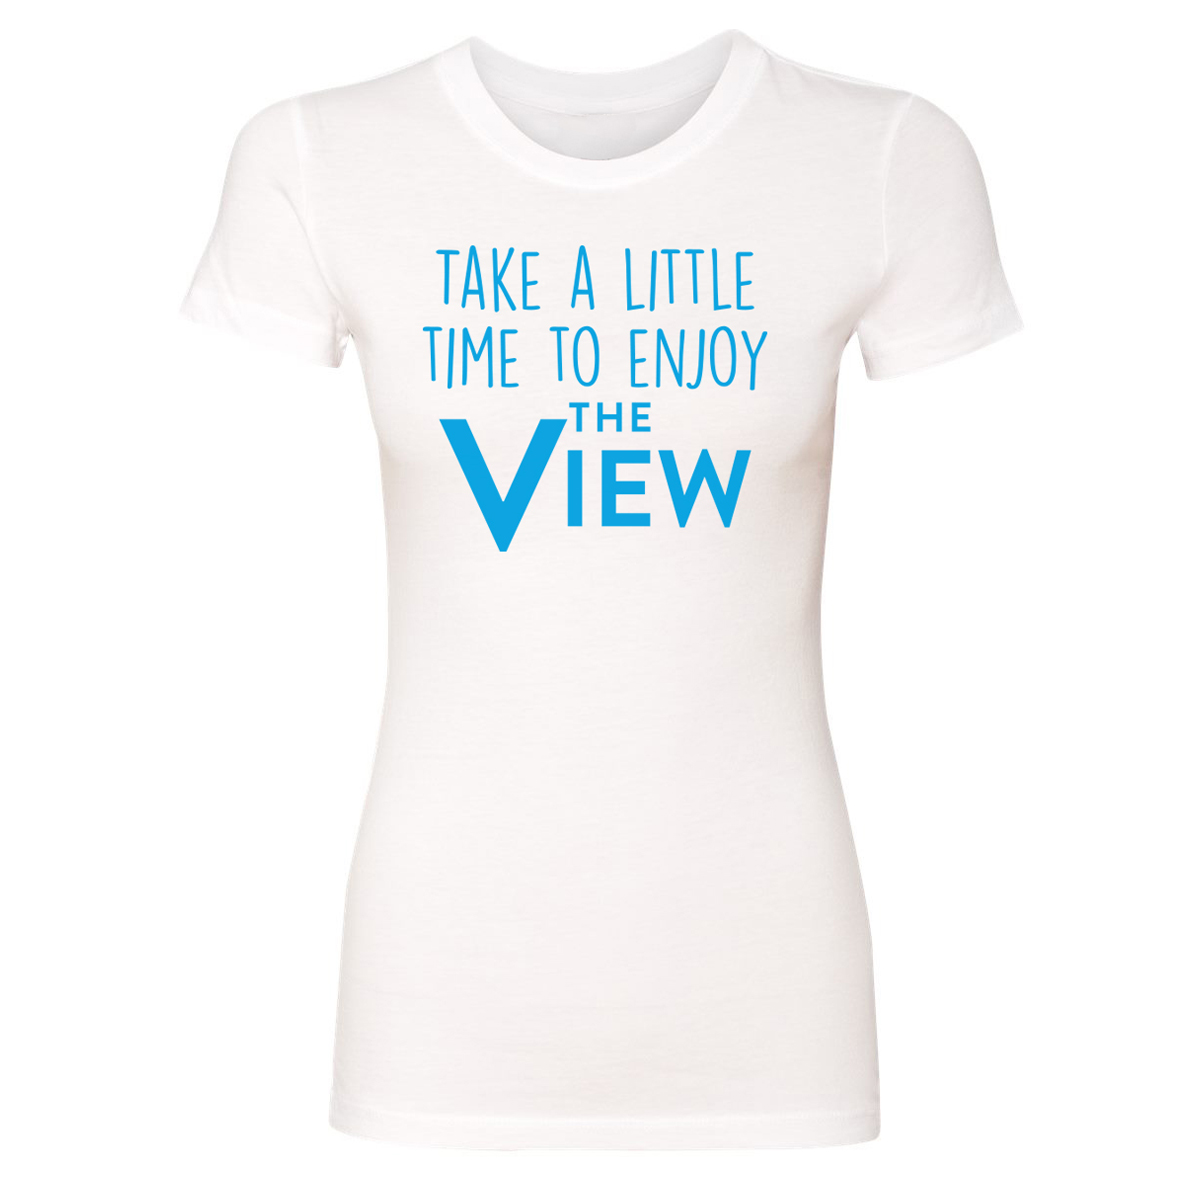 The View Time To Enjoy The View Women's T-Shirt